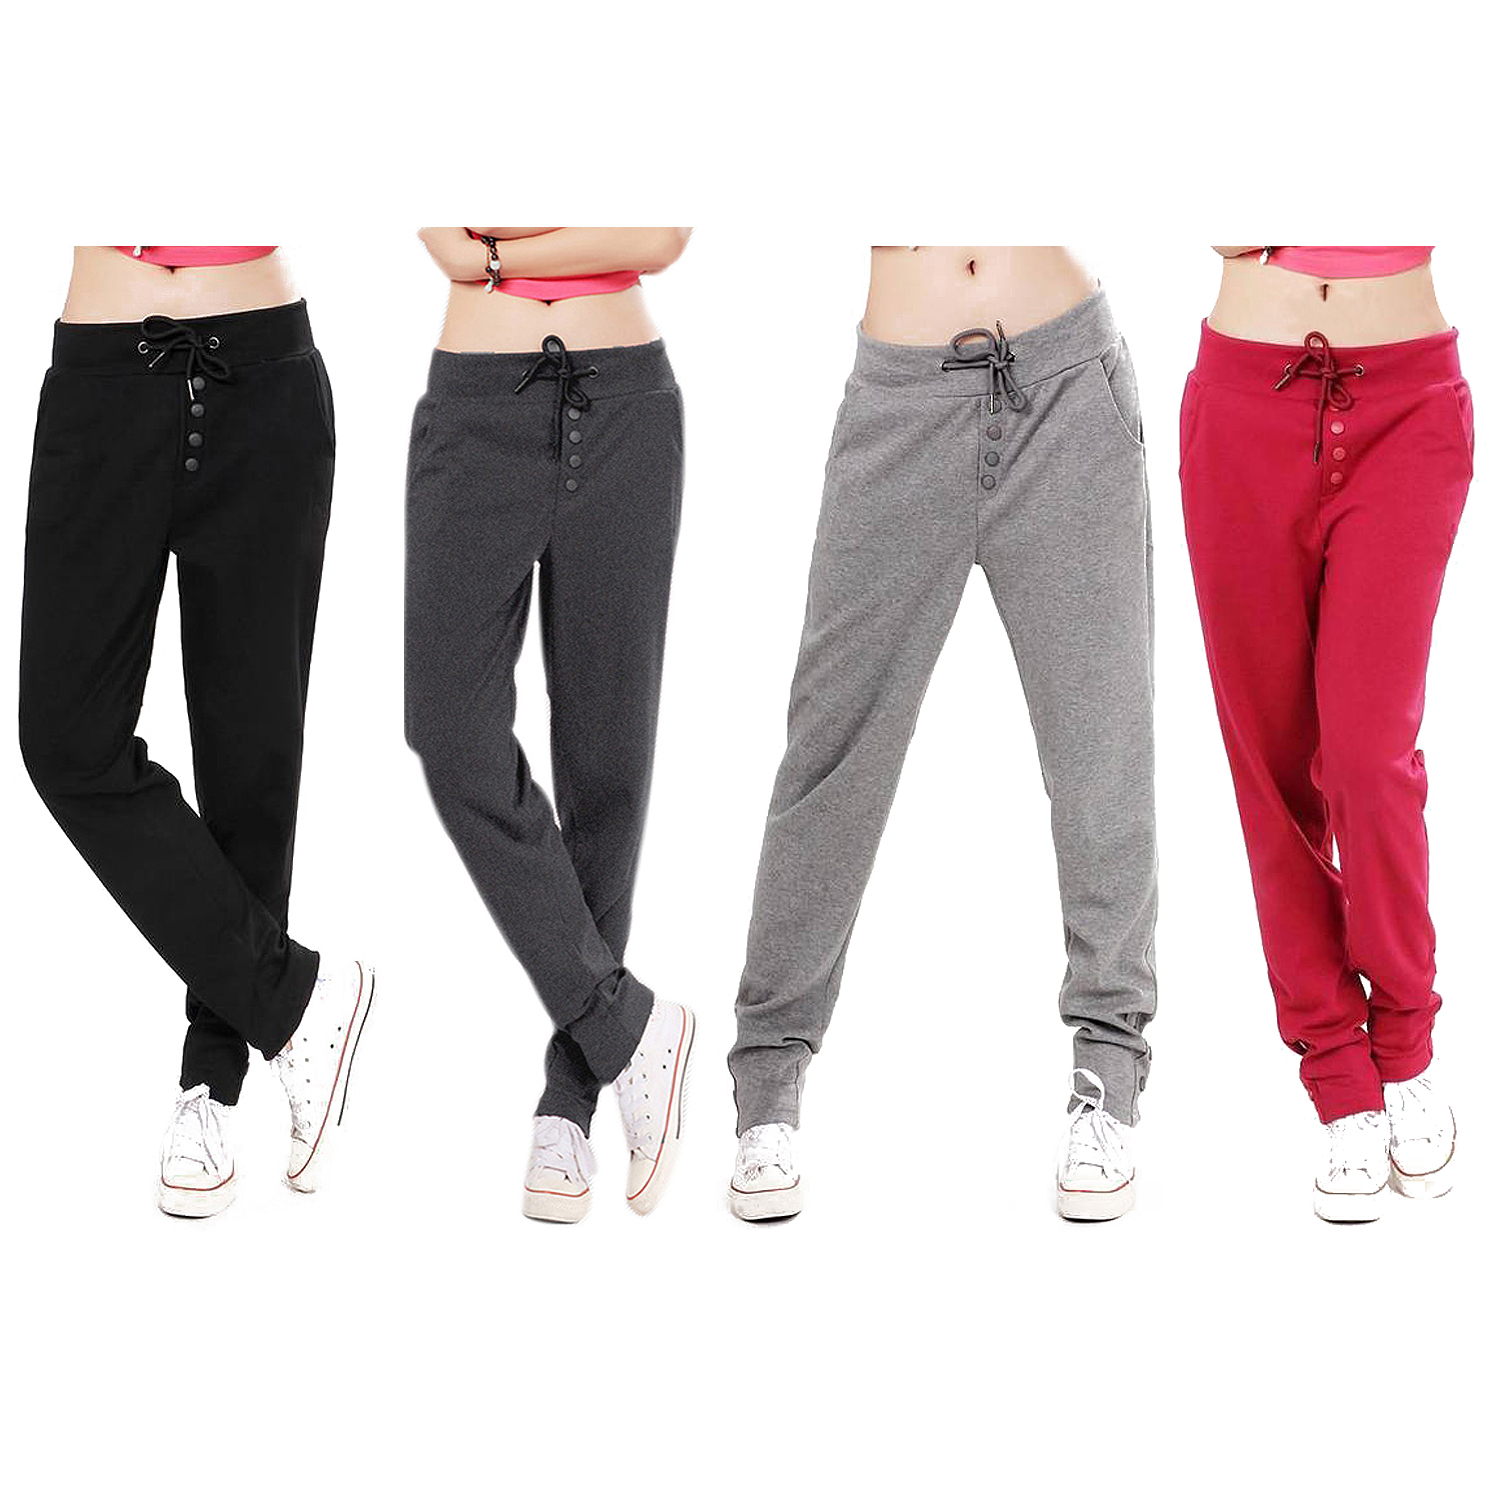 Beautiful Women Harem Pants Baggy Hip Hop Dance Trousers Casual Fashion US S M L